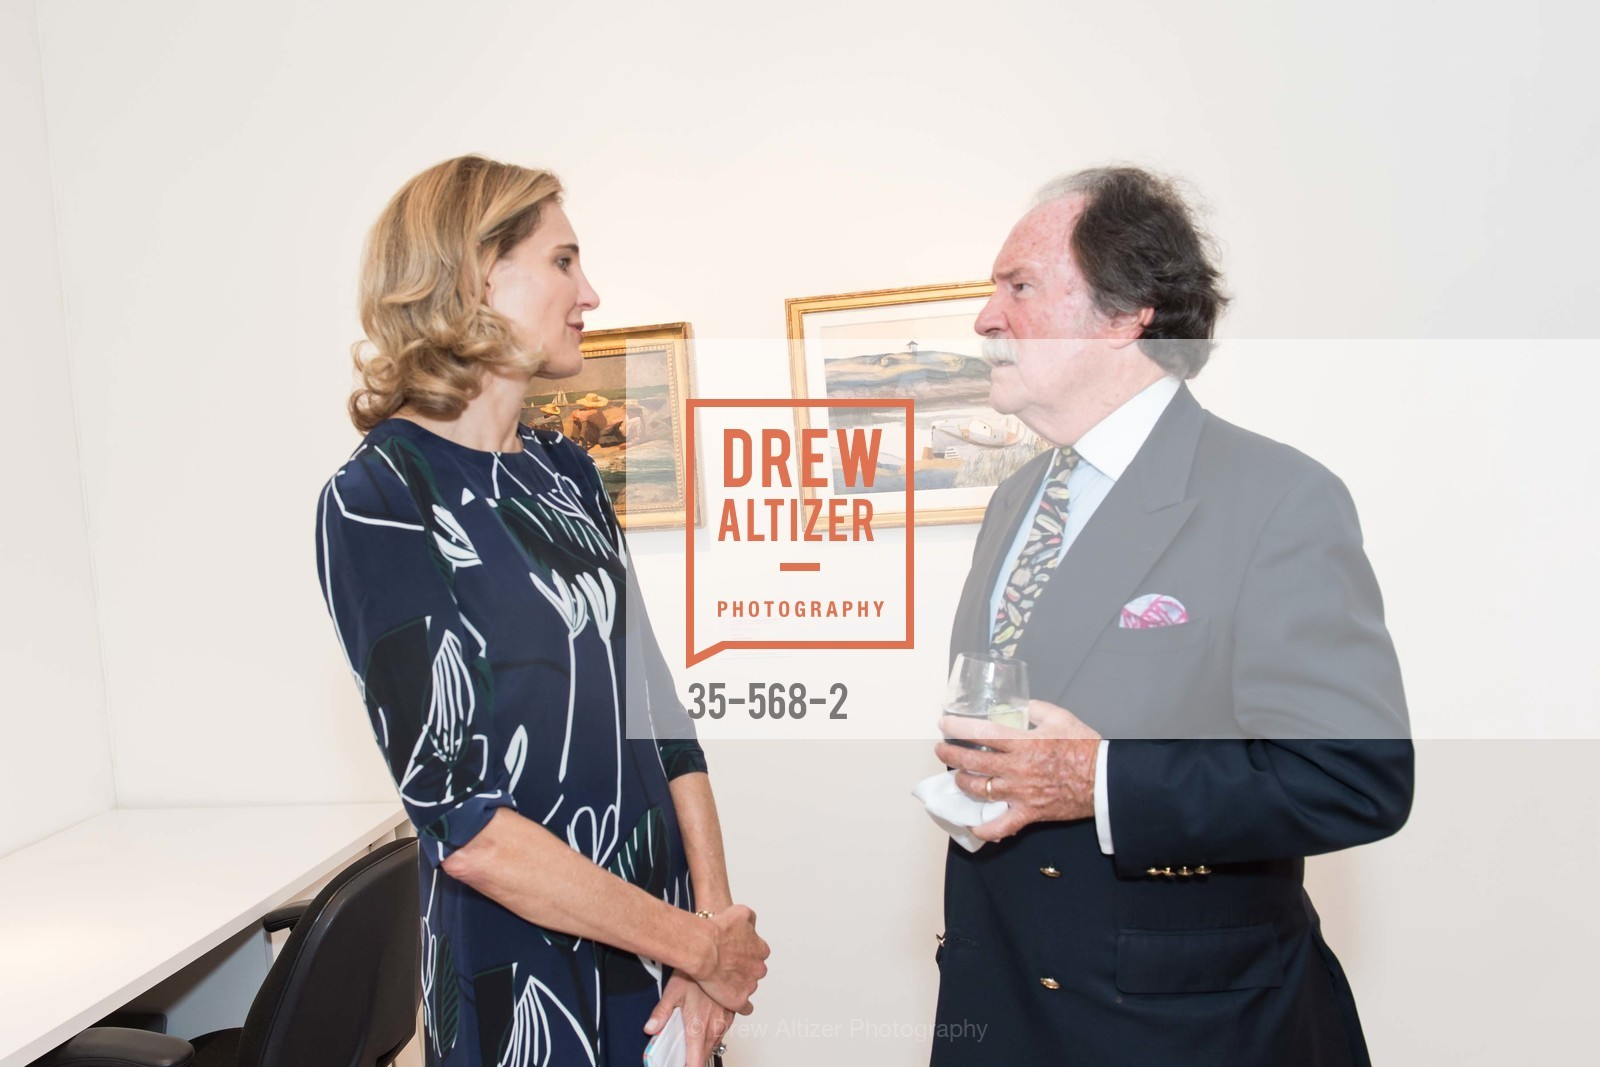 JeJennifer Biederbeck, Pat McBaine, SOTHEBY'S  Hosts a Private Viewing of Highlights from the Collection of MRS. PAUL MELLON, US, September 17th, 2014,Drew Altizer, Drew Altizer Photography, full-service event agency, private events, San Francisco photographer, photographer California